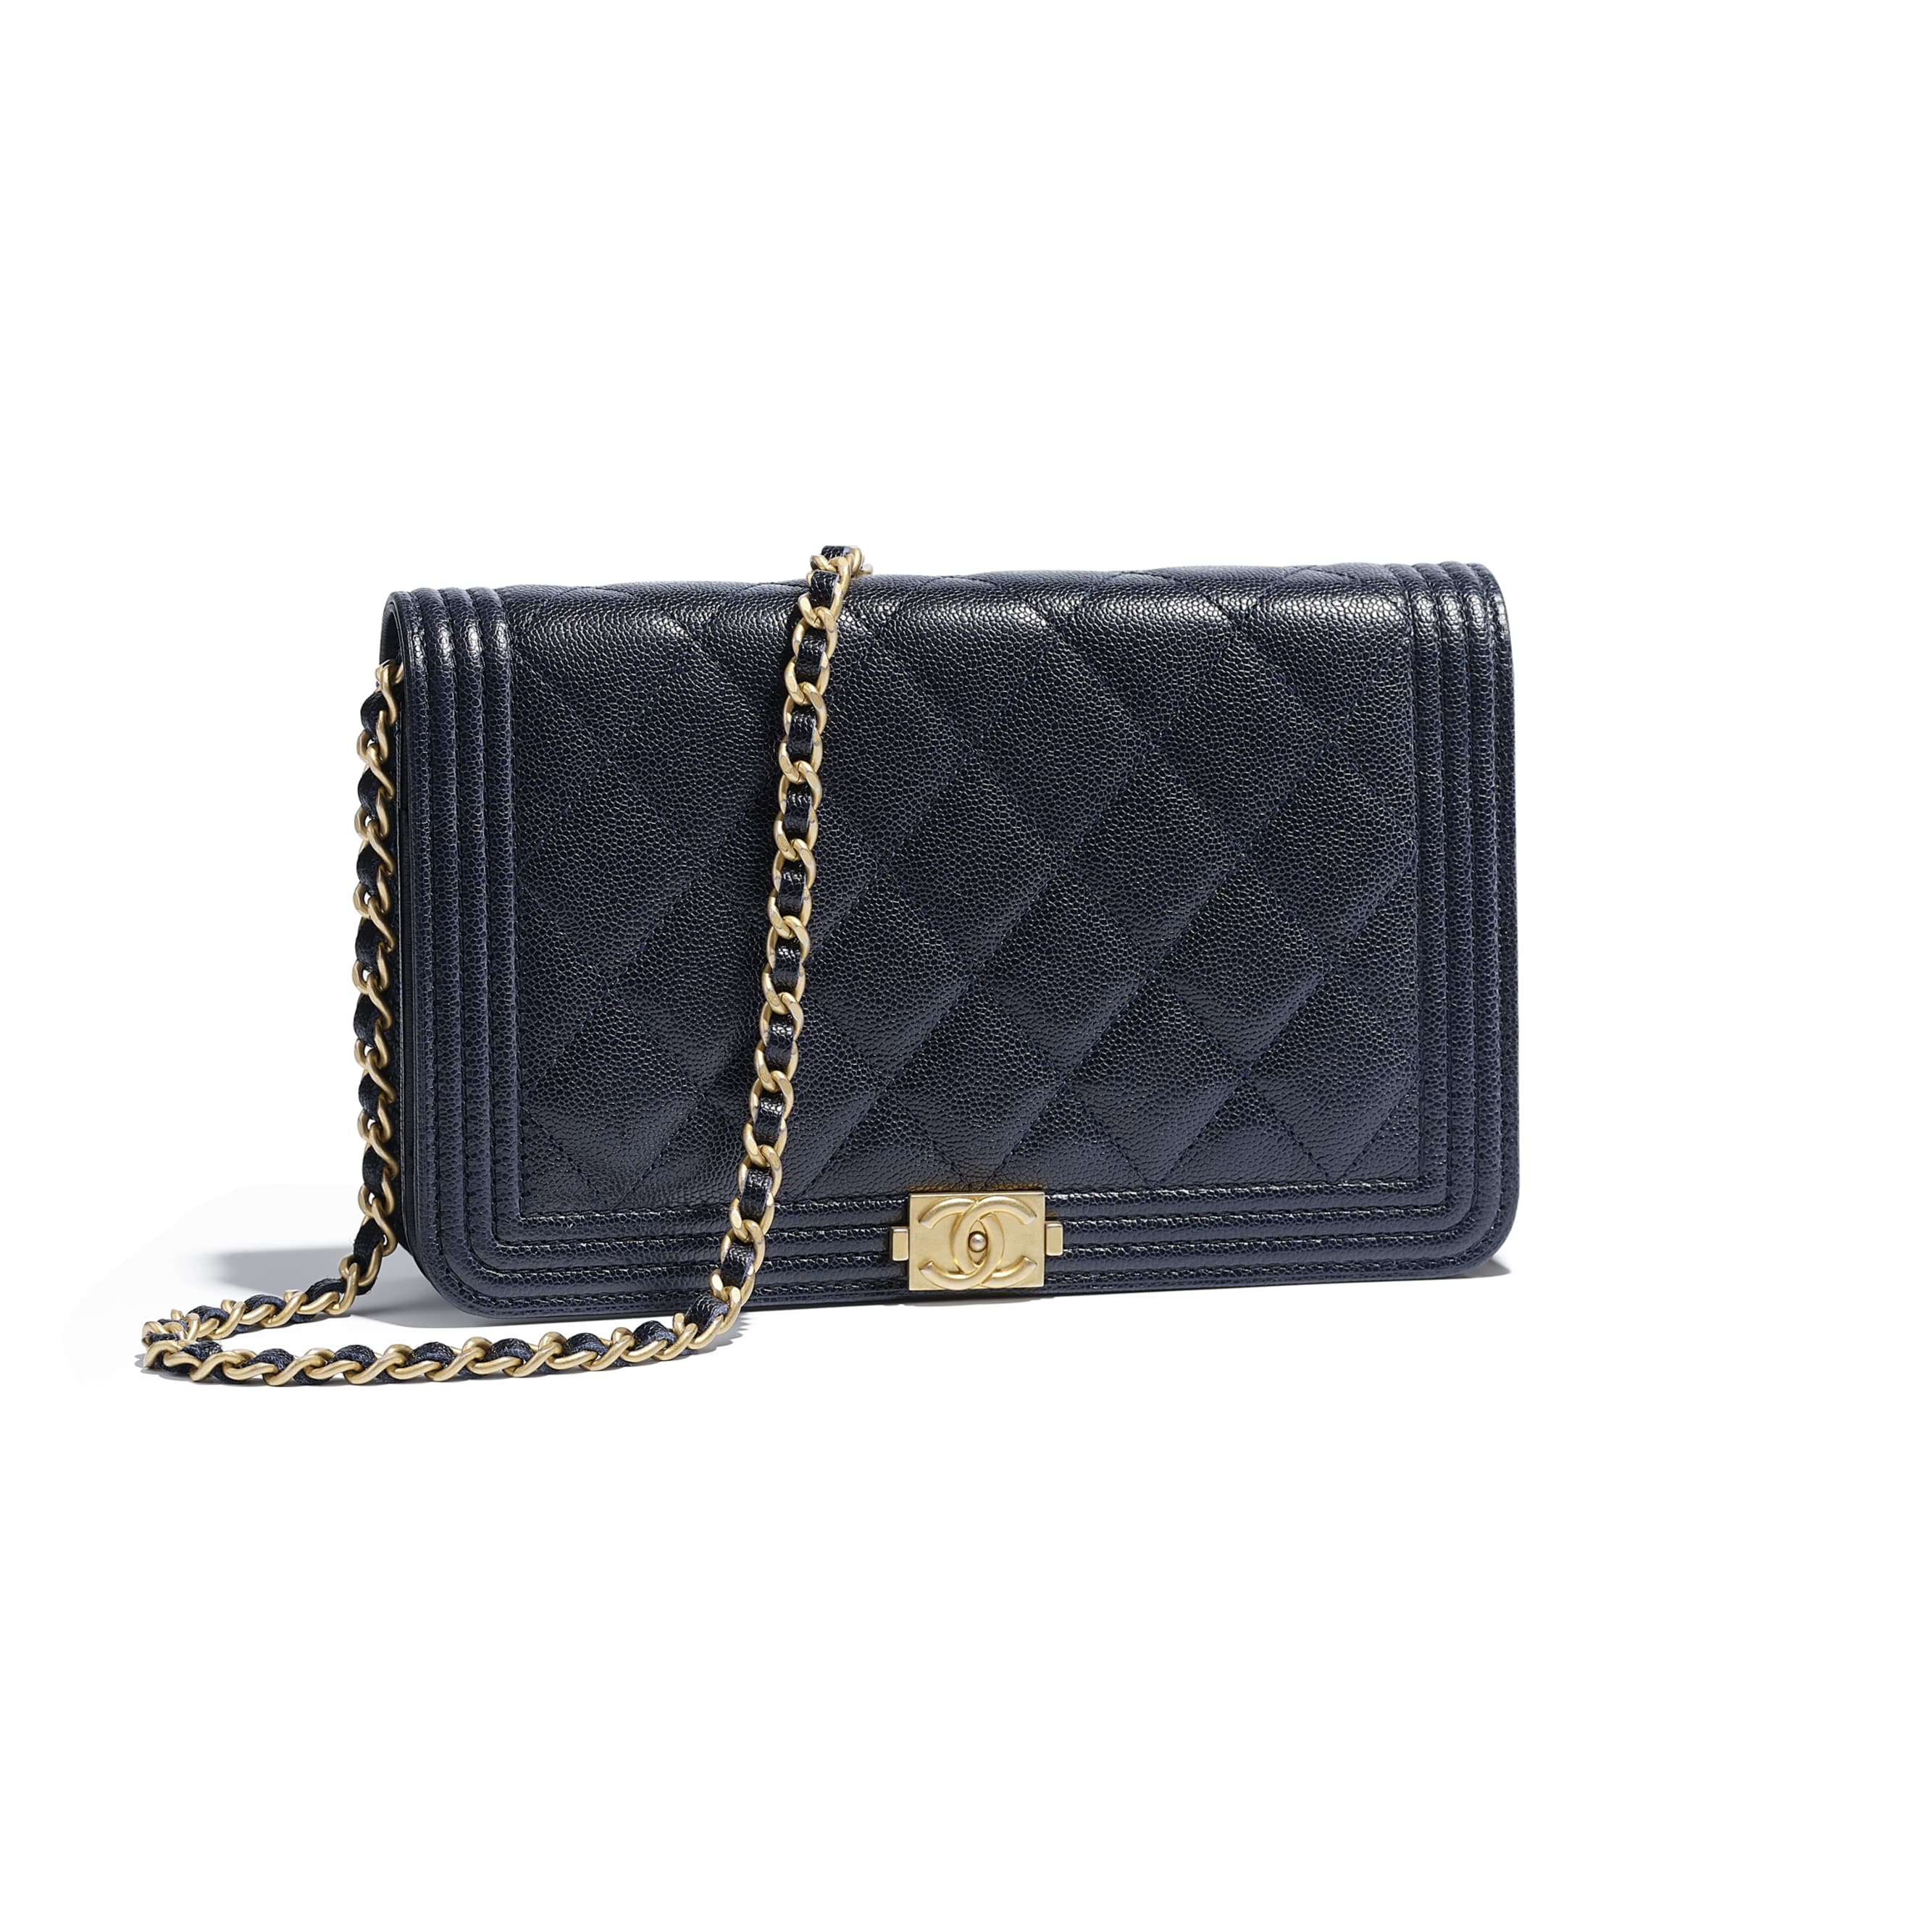 c459fd0958c6 Grained Calfskin & Gold-Tone Metal Navy Blue BOY CHANEL Wallet on Chain |  CHANEL